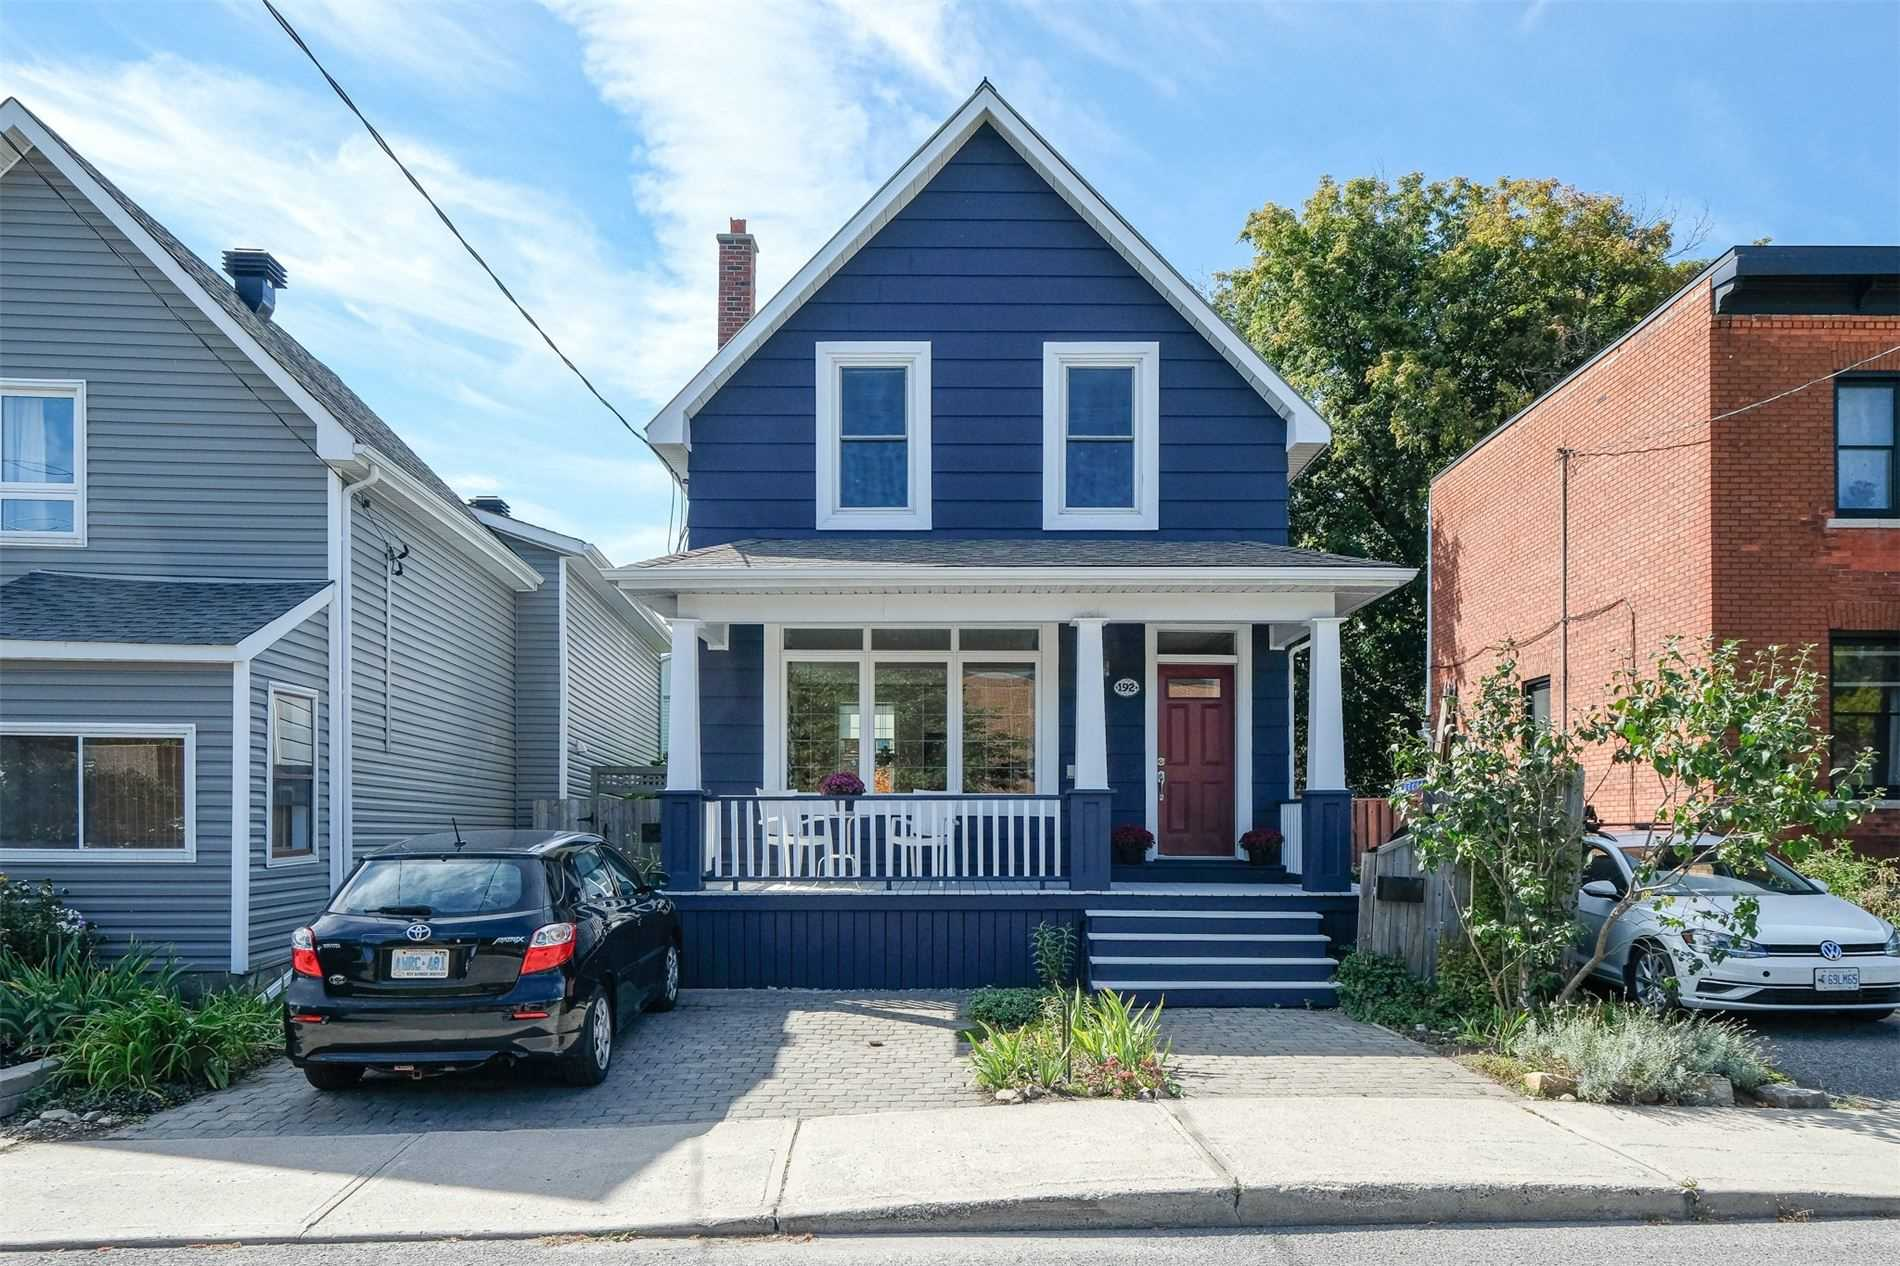 Detached house For Sale In Ottawa